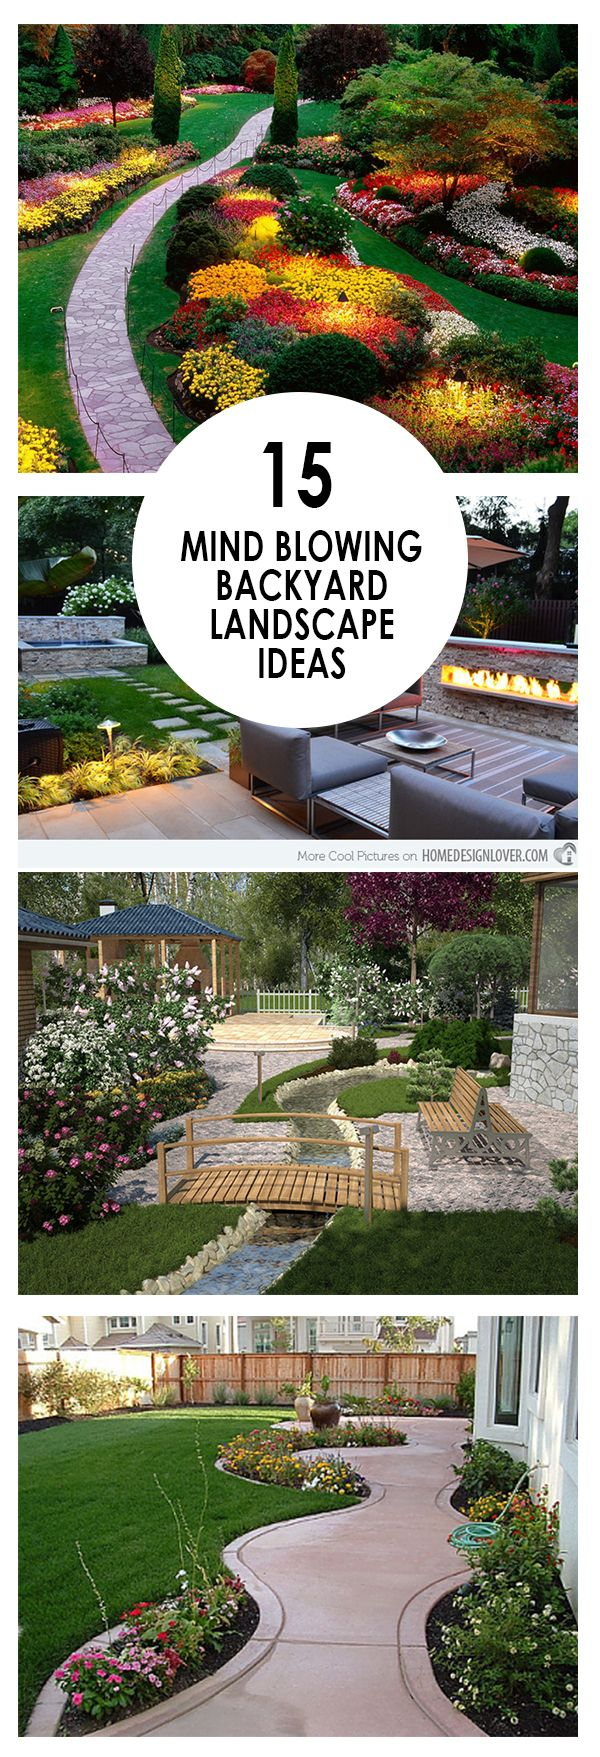 What are some popular ideas for backyard designs?